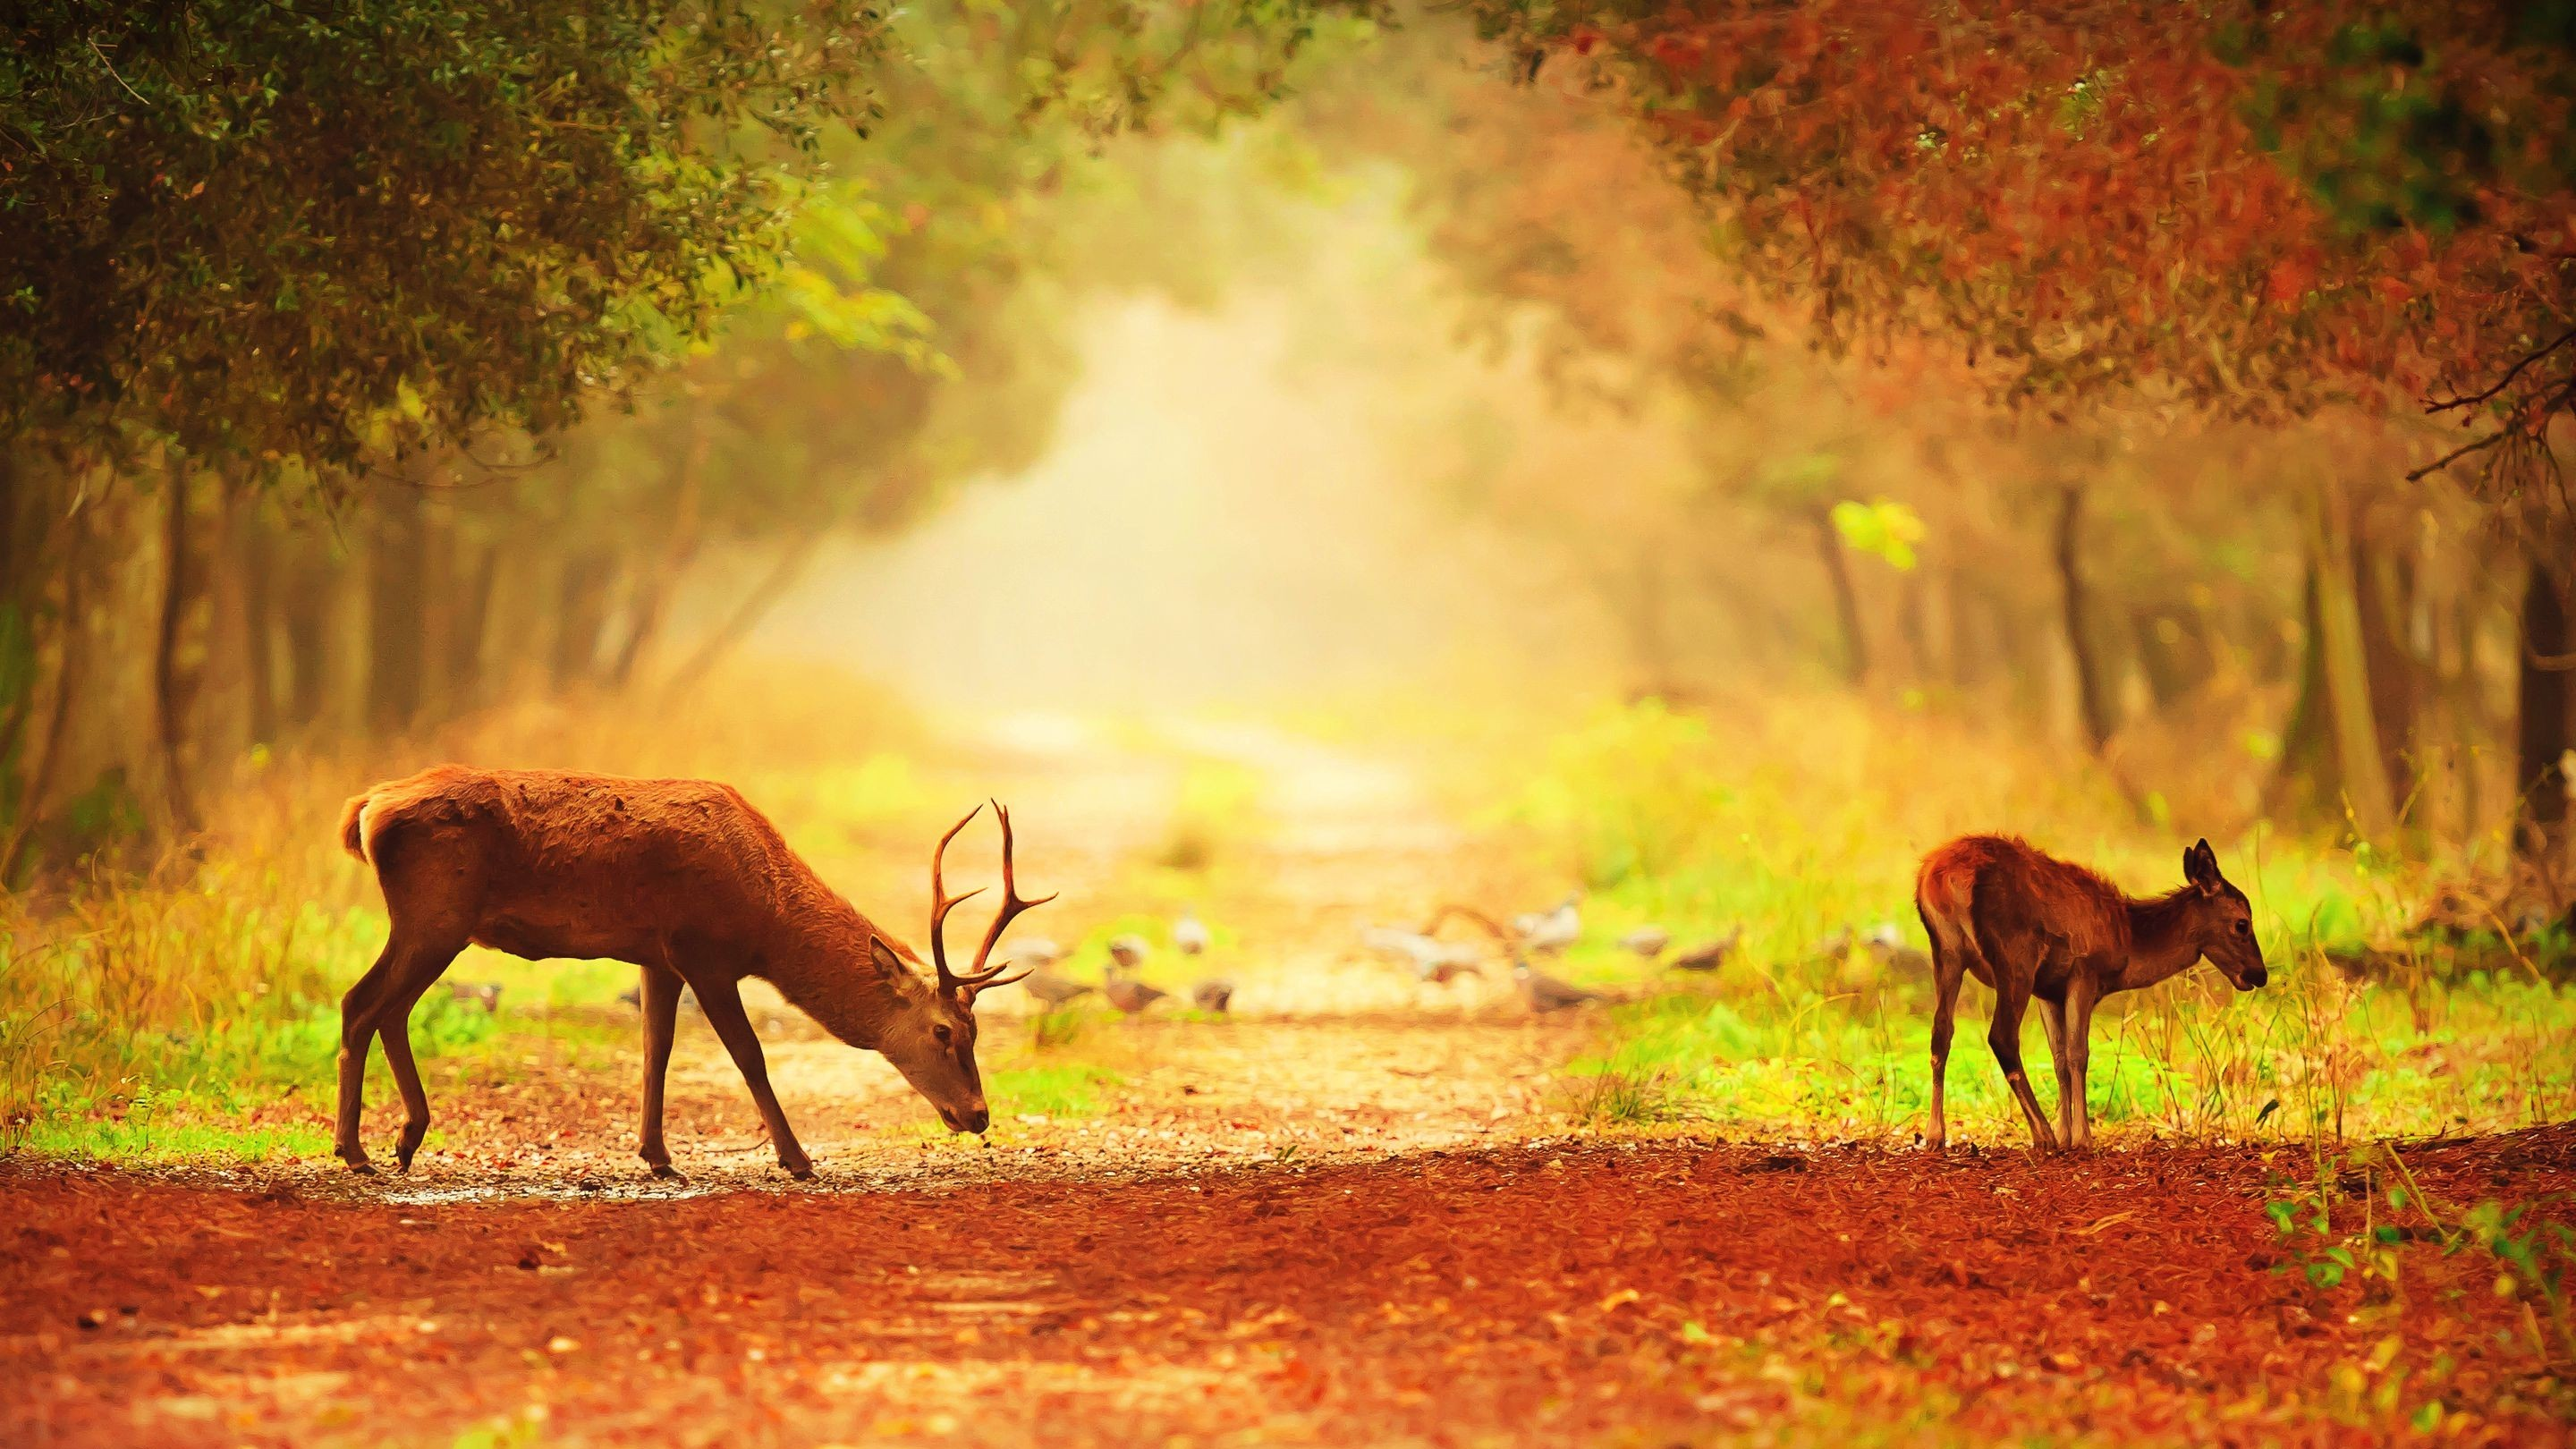 High Resolution Nature Pictures With A Couple Of Deer In